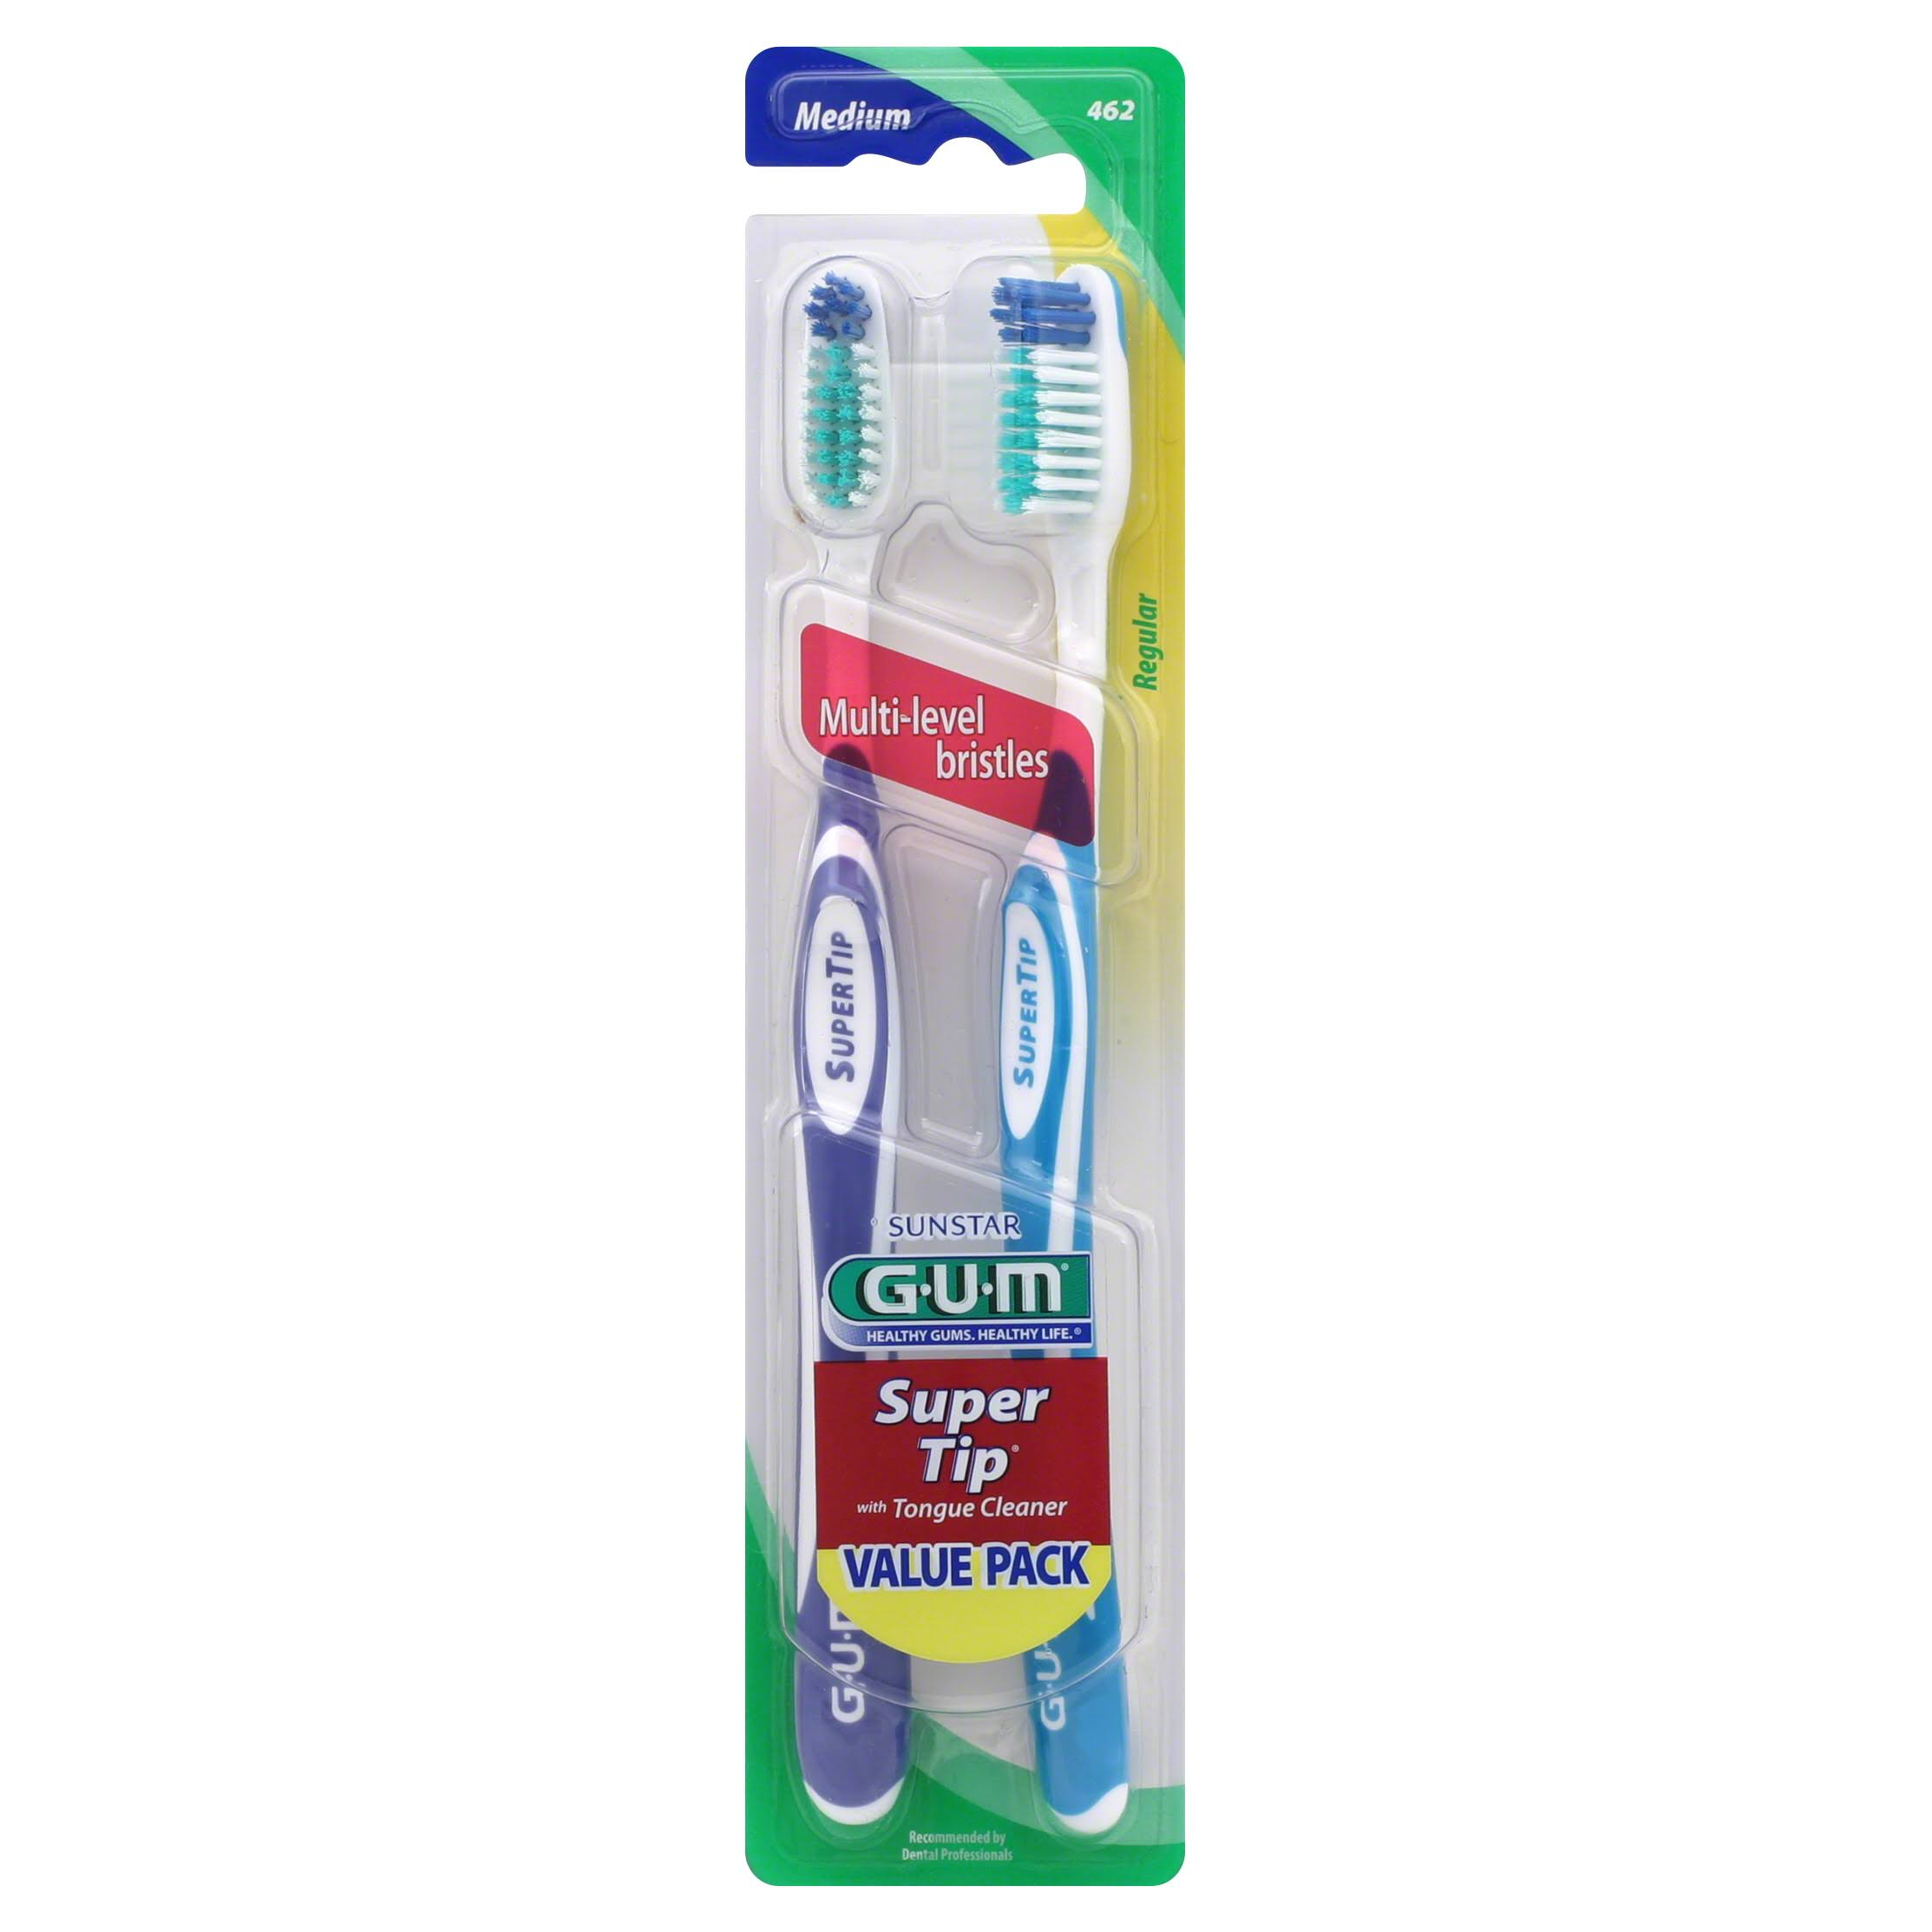 Gum Toothbrush - Medium, x2